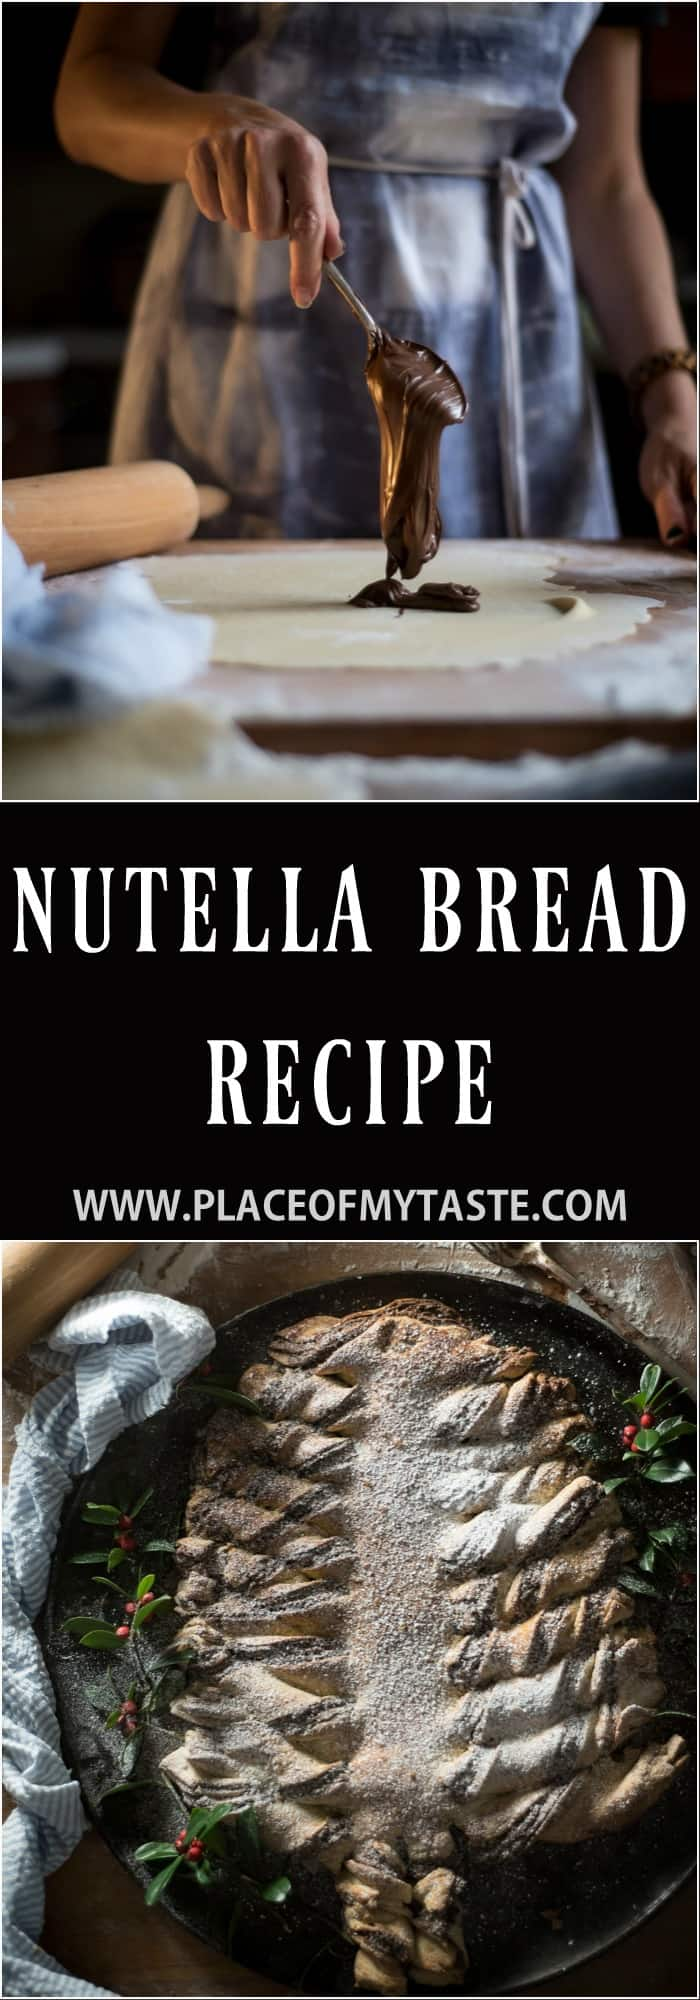 Nutella bread recipe